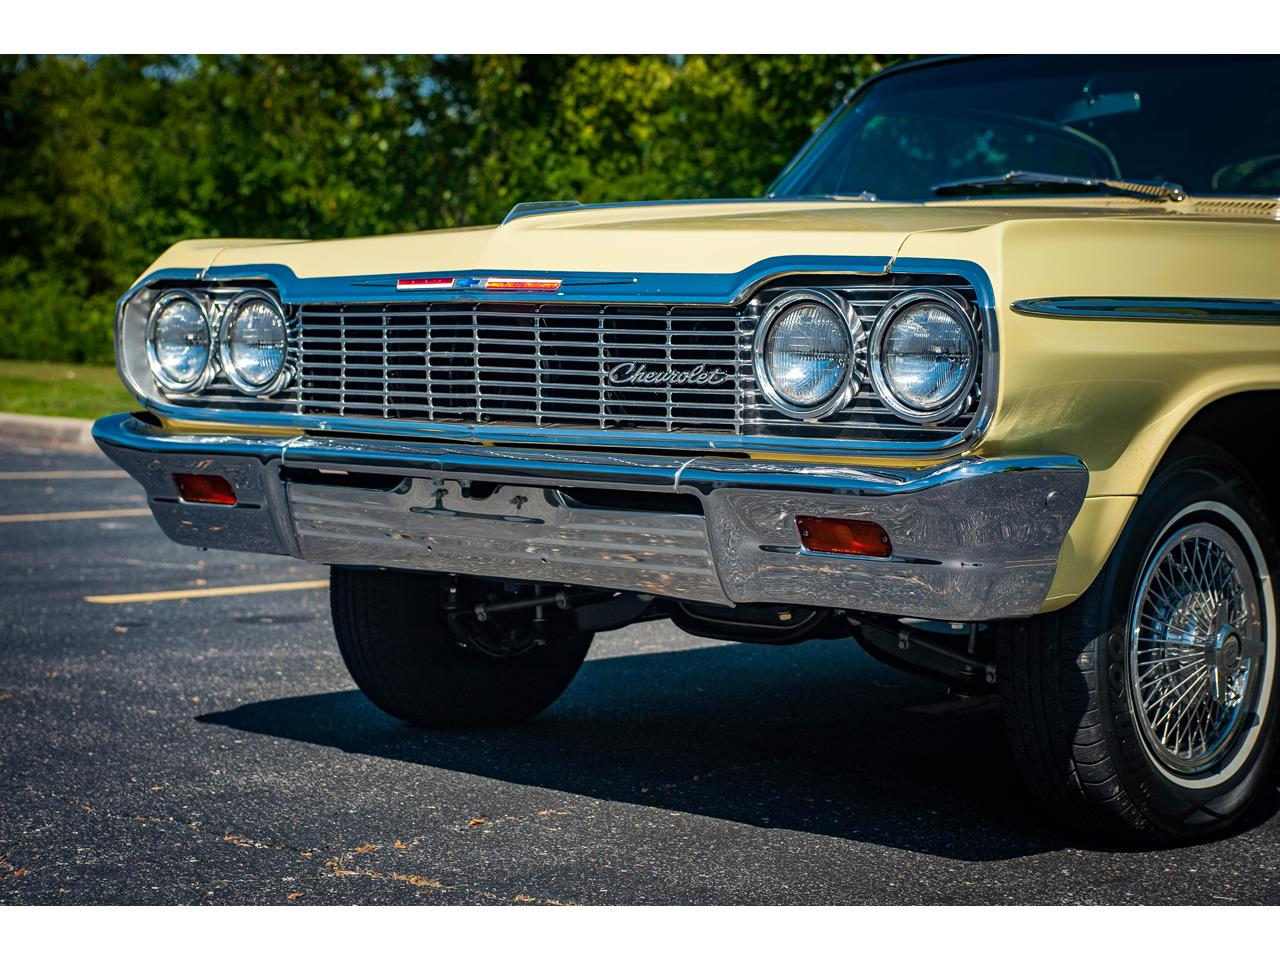 Large Picture of Classic 1964 Chevrolet Impala located in Illinois - $45,000.00 Offered by Gateway Classic Cars - St. Louis - QRDR